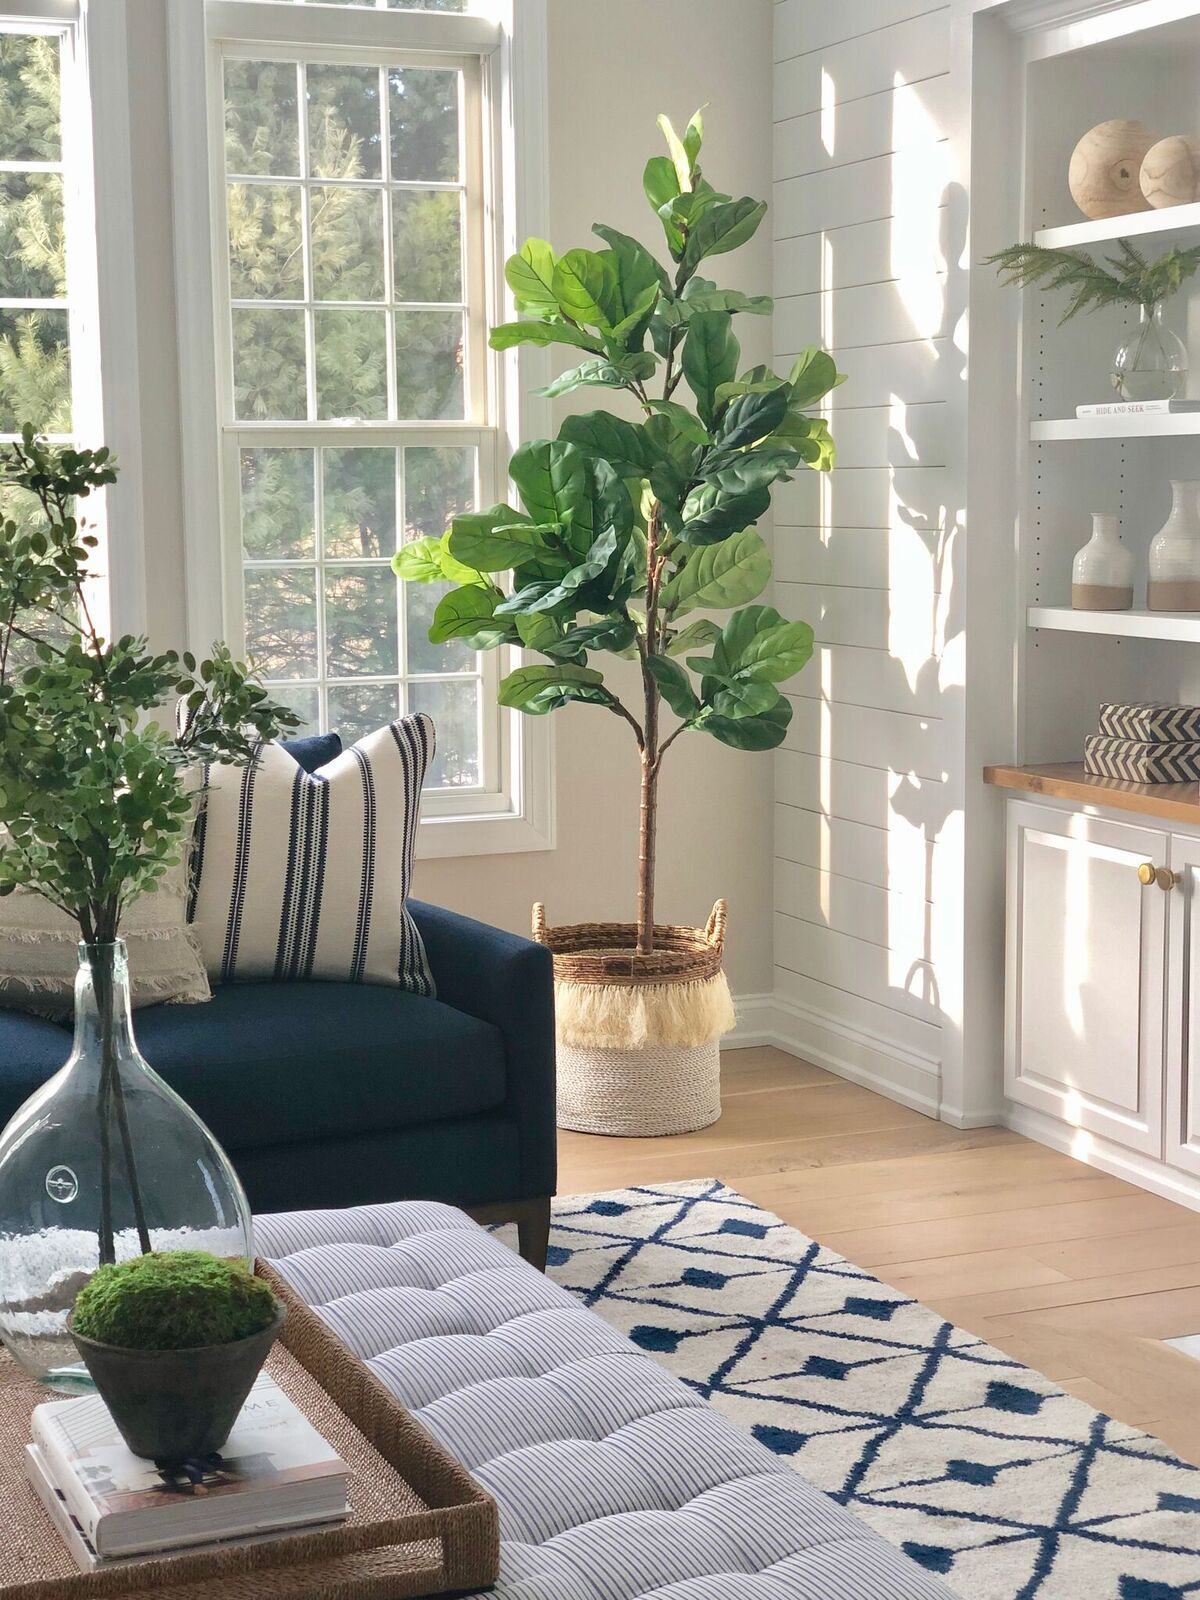 stephanie-kraus-designs-mainline-pa-family-room-project-after-fiddle-trees.jpg